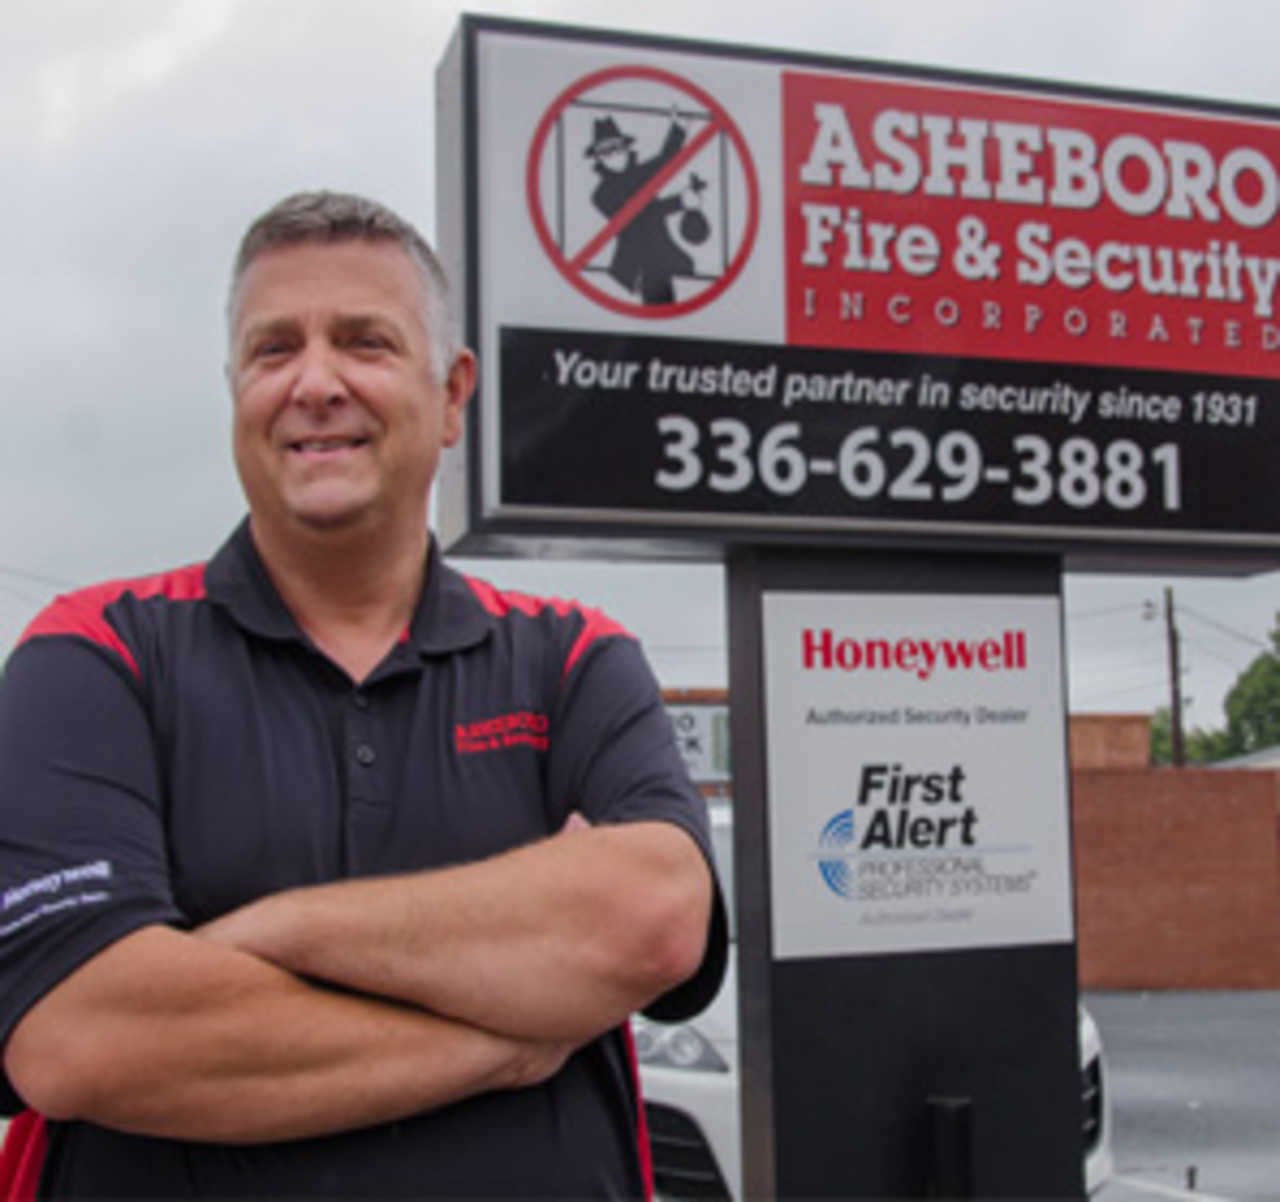 Asheboro Fire & Security Inc. - House and Home - Home Security in Asheboro NC